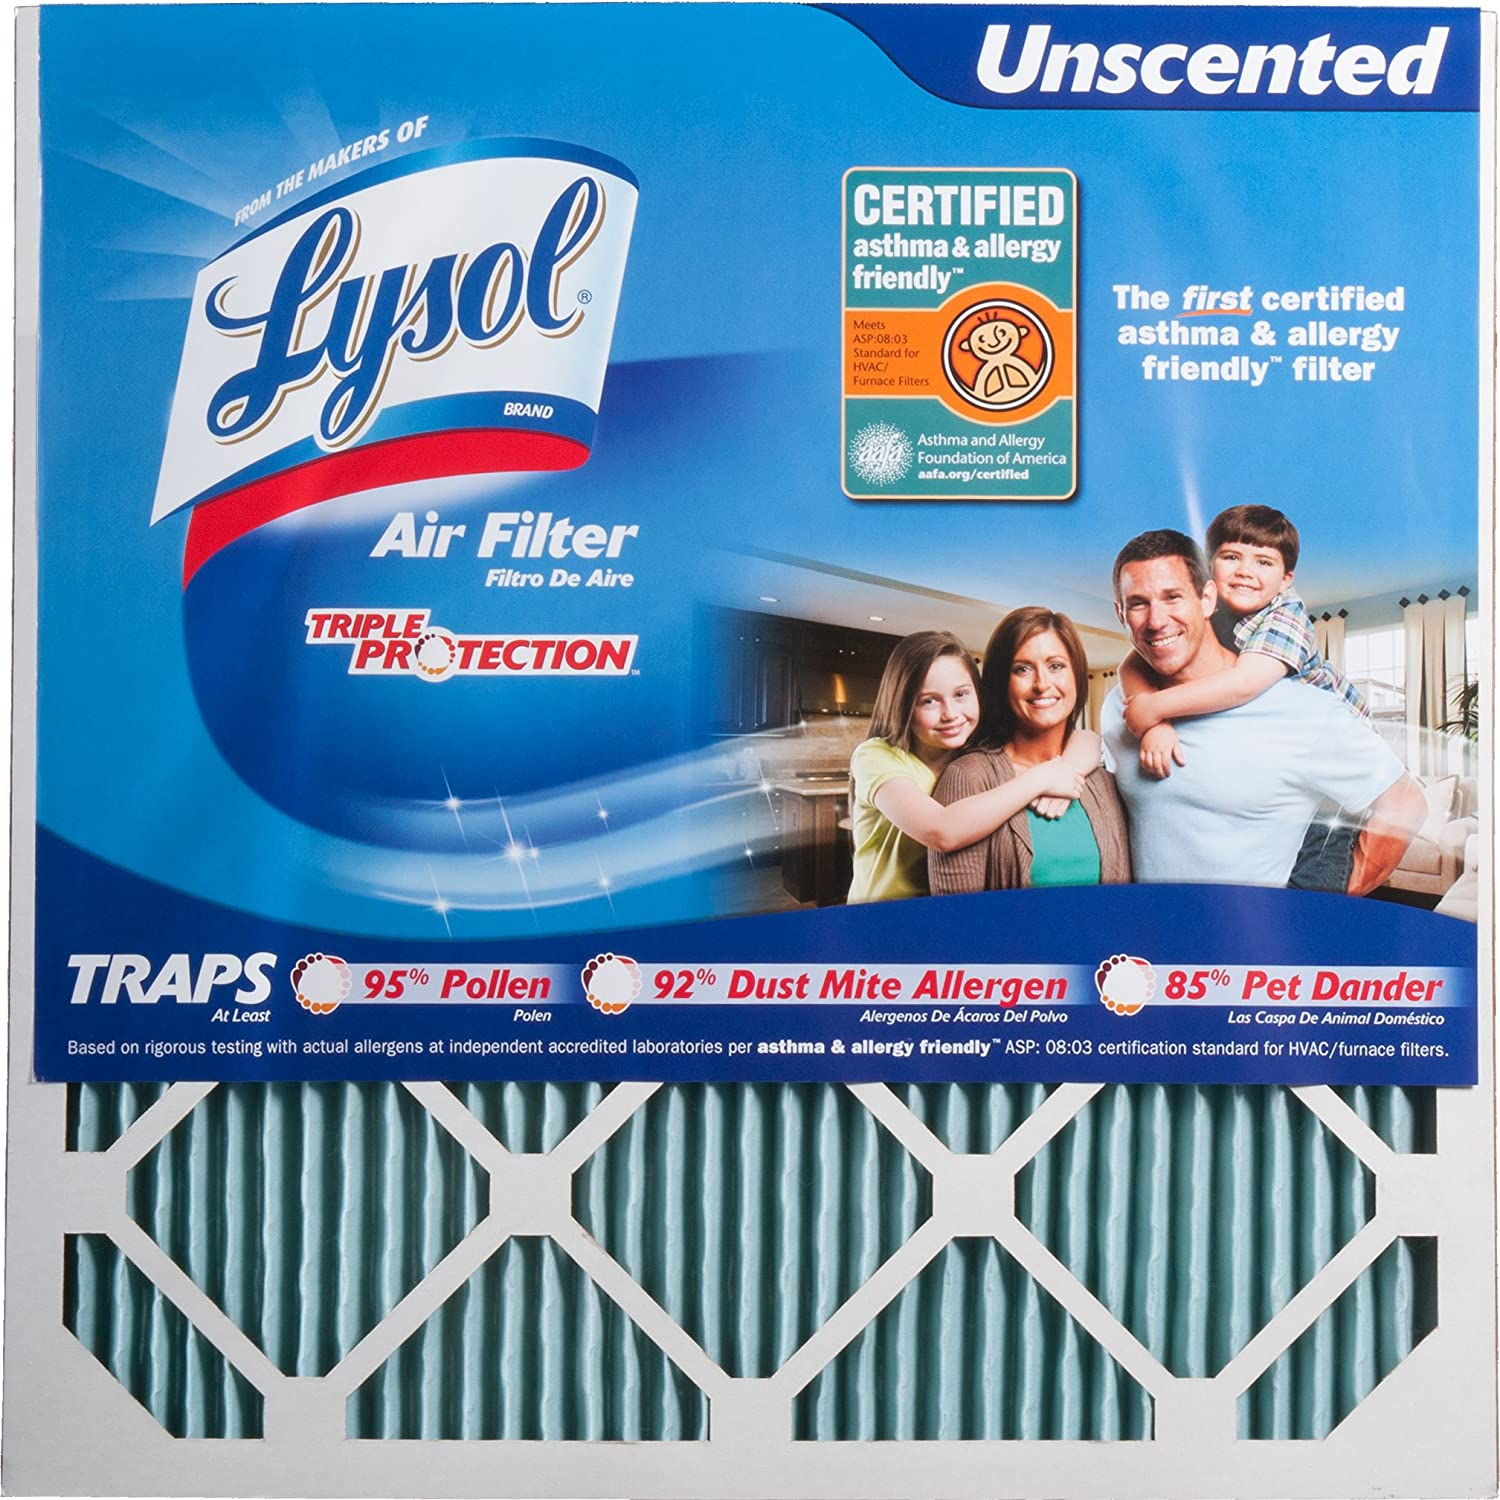 Best furnace air filters for allergies - Amazon Com Lysol Triple Protection Air Conditioner Furnace Air Filter 20 X 20 X 1 6 Pack Home Improvement